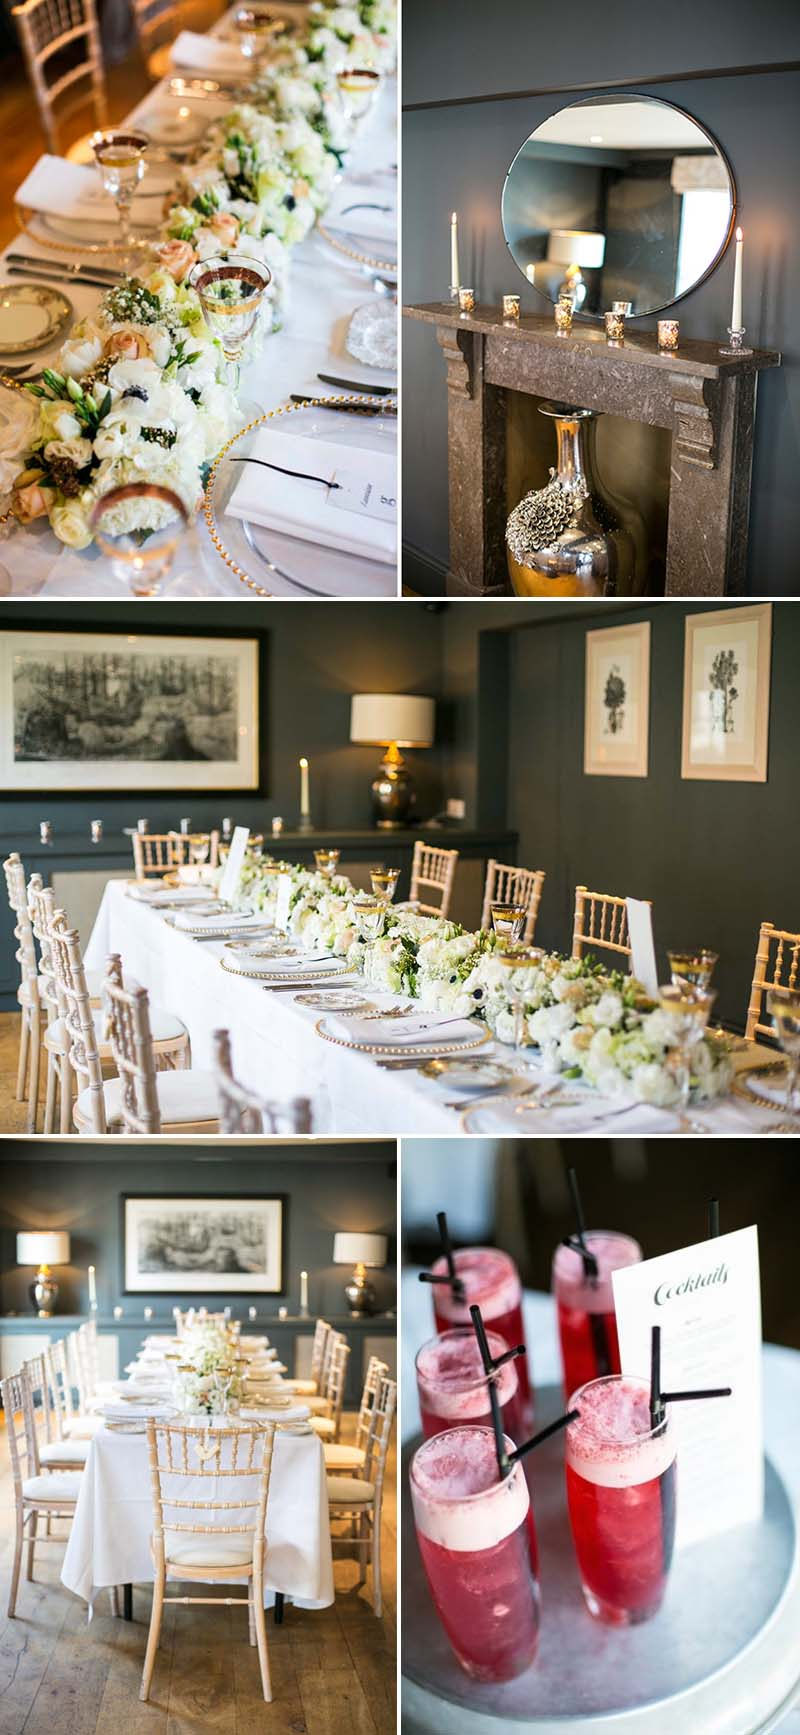 coco-wedding-venues-coco-collection-road-trip-the-george-at-rye-wedding-venues-in-east-sussex-4